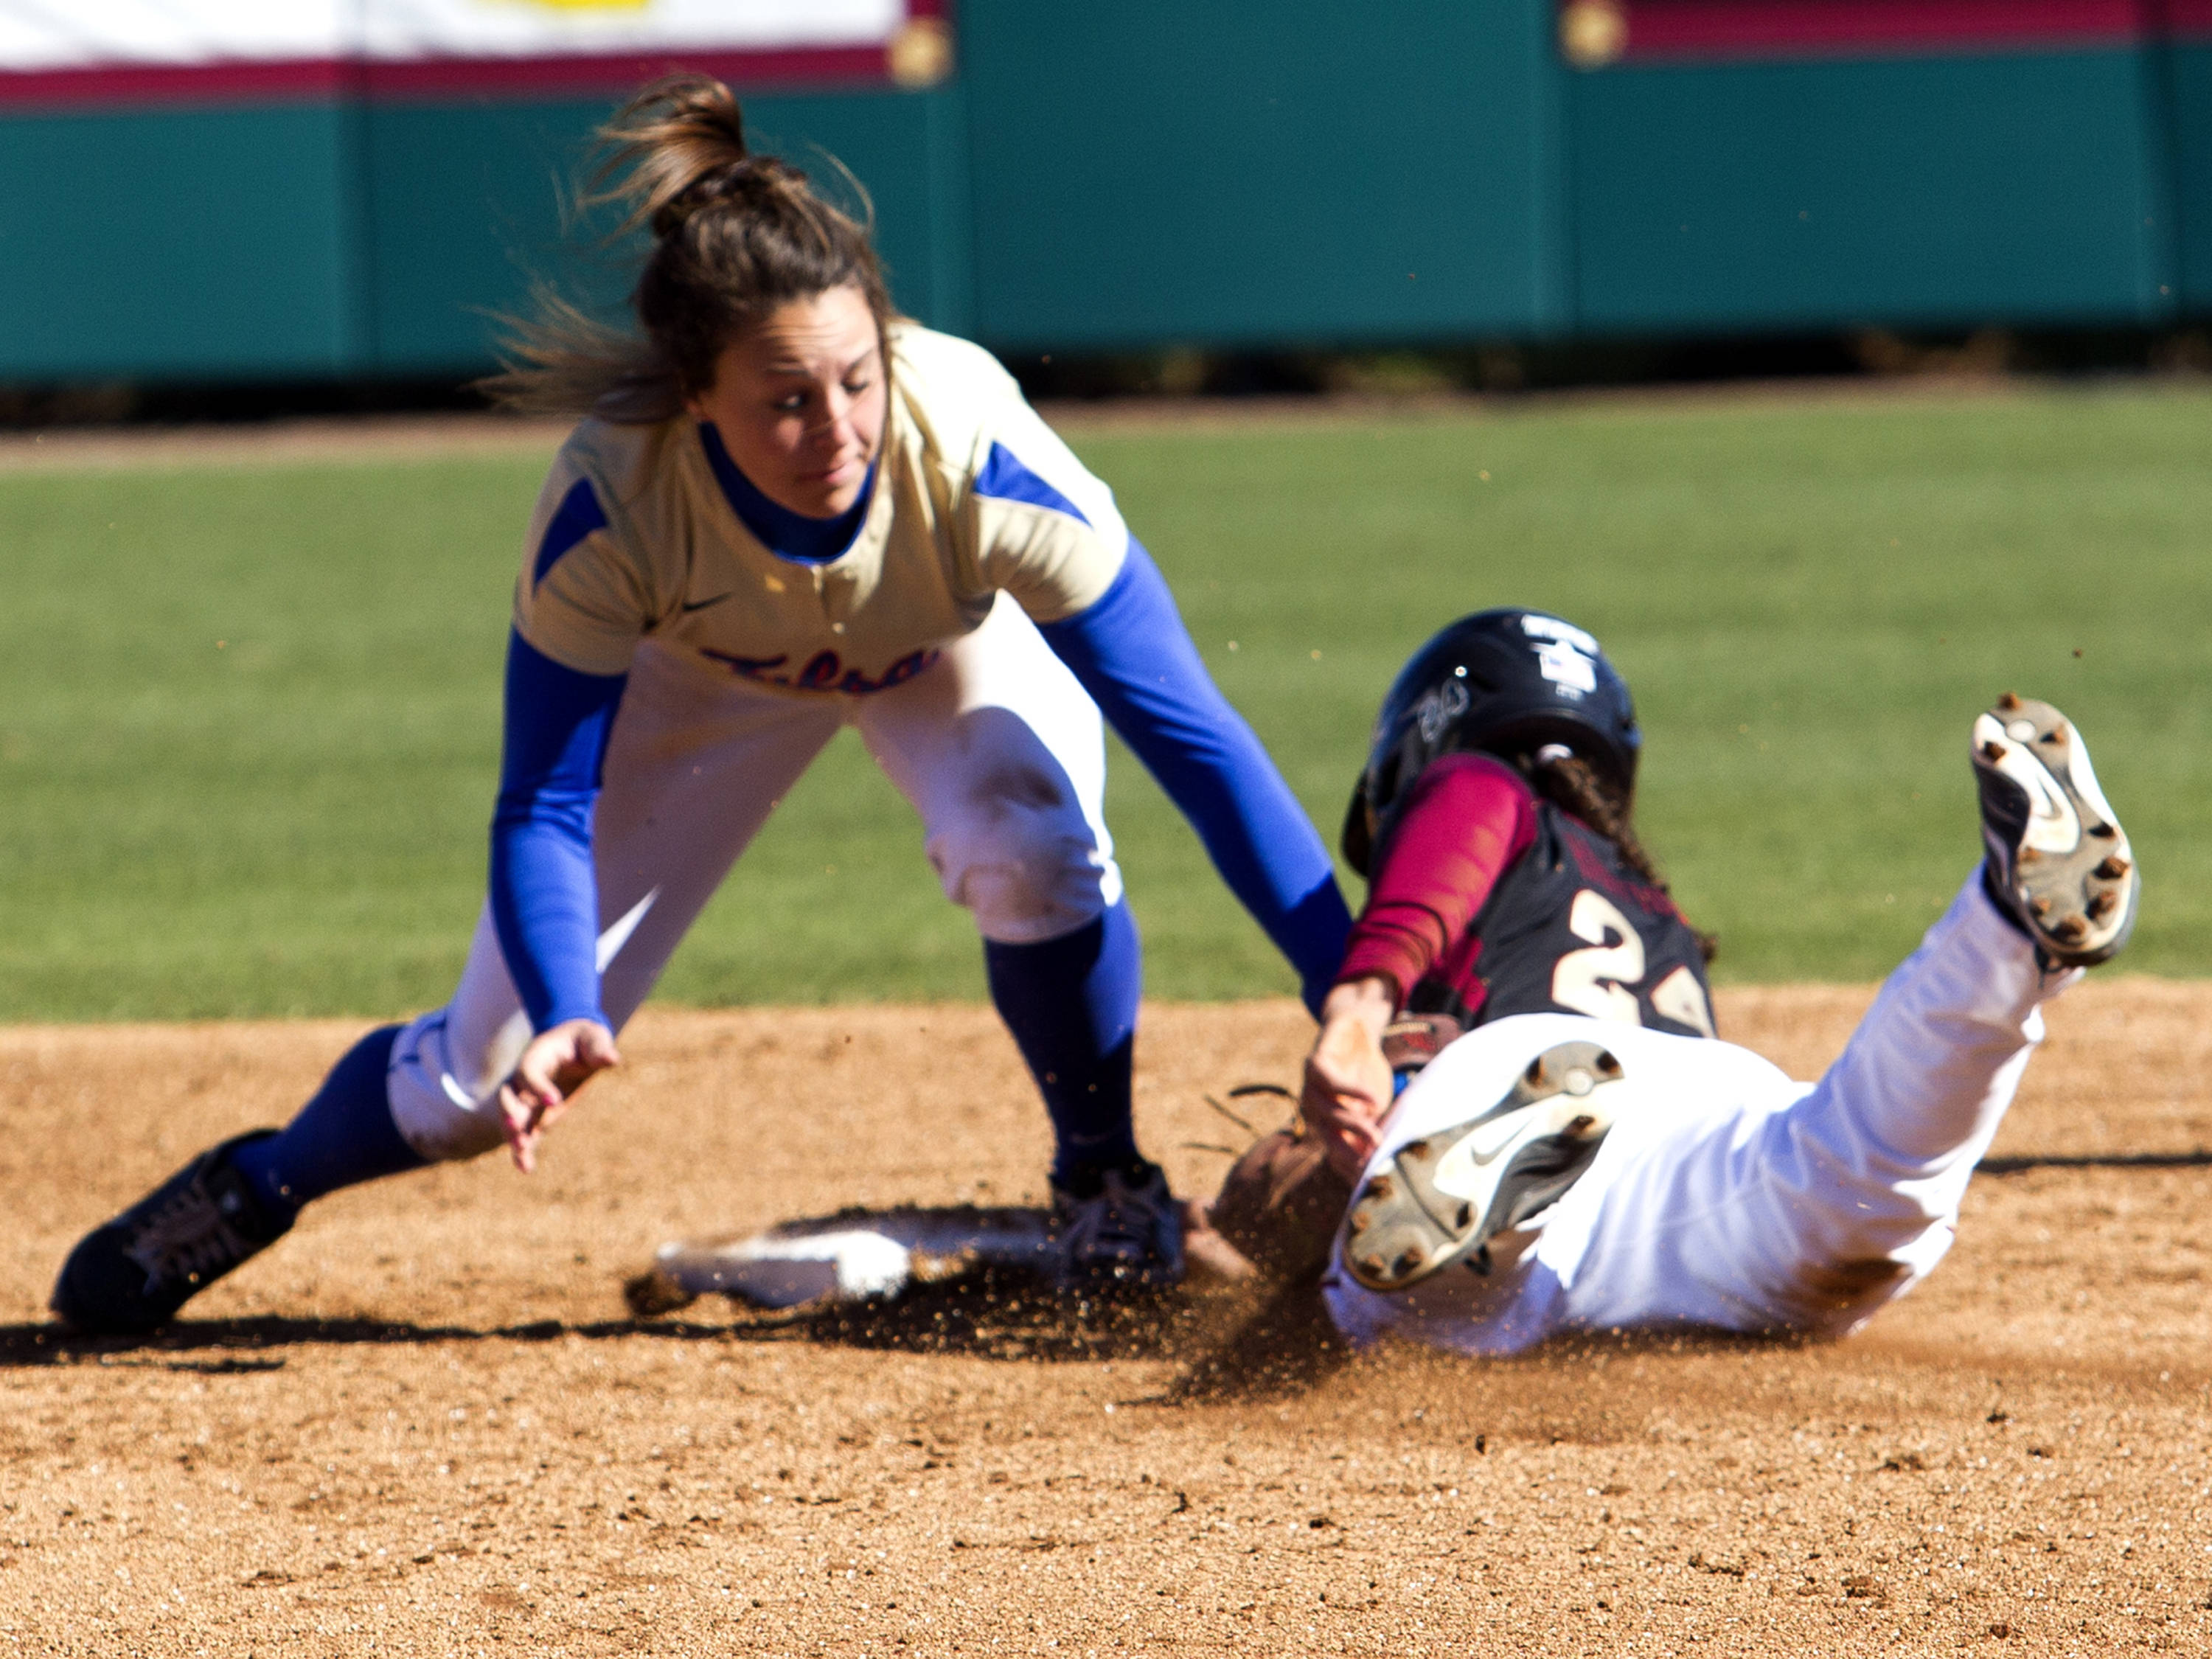 Briana Hamilton (24) beats the throw, FSU vs Tulsa, 02/17/13. (Photo by Steve Musco)